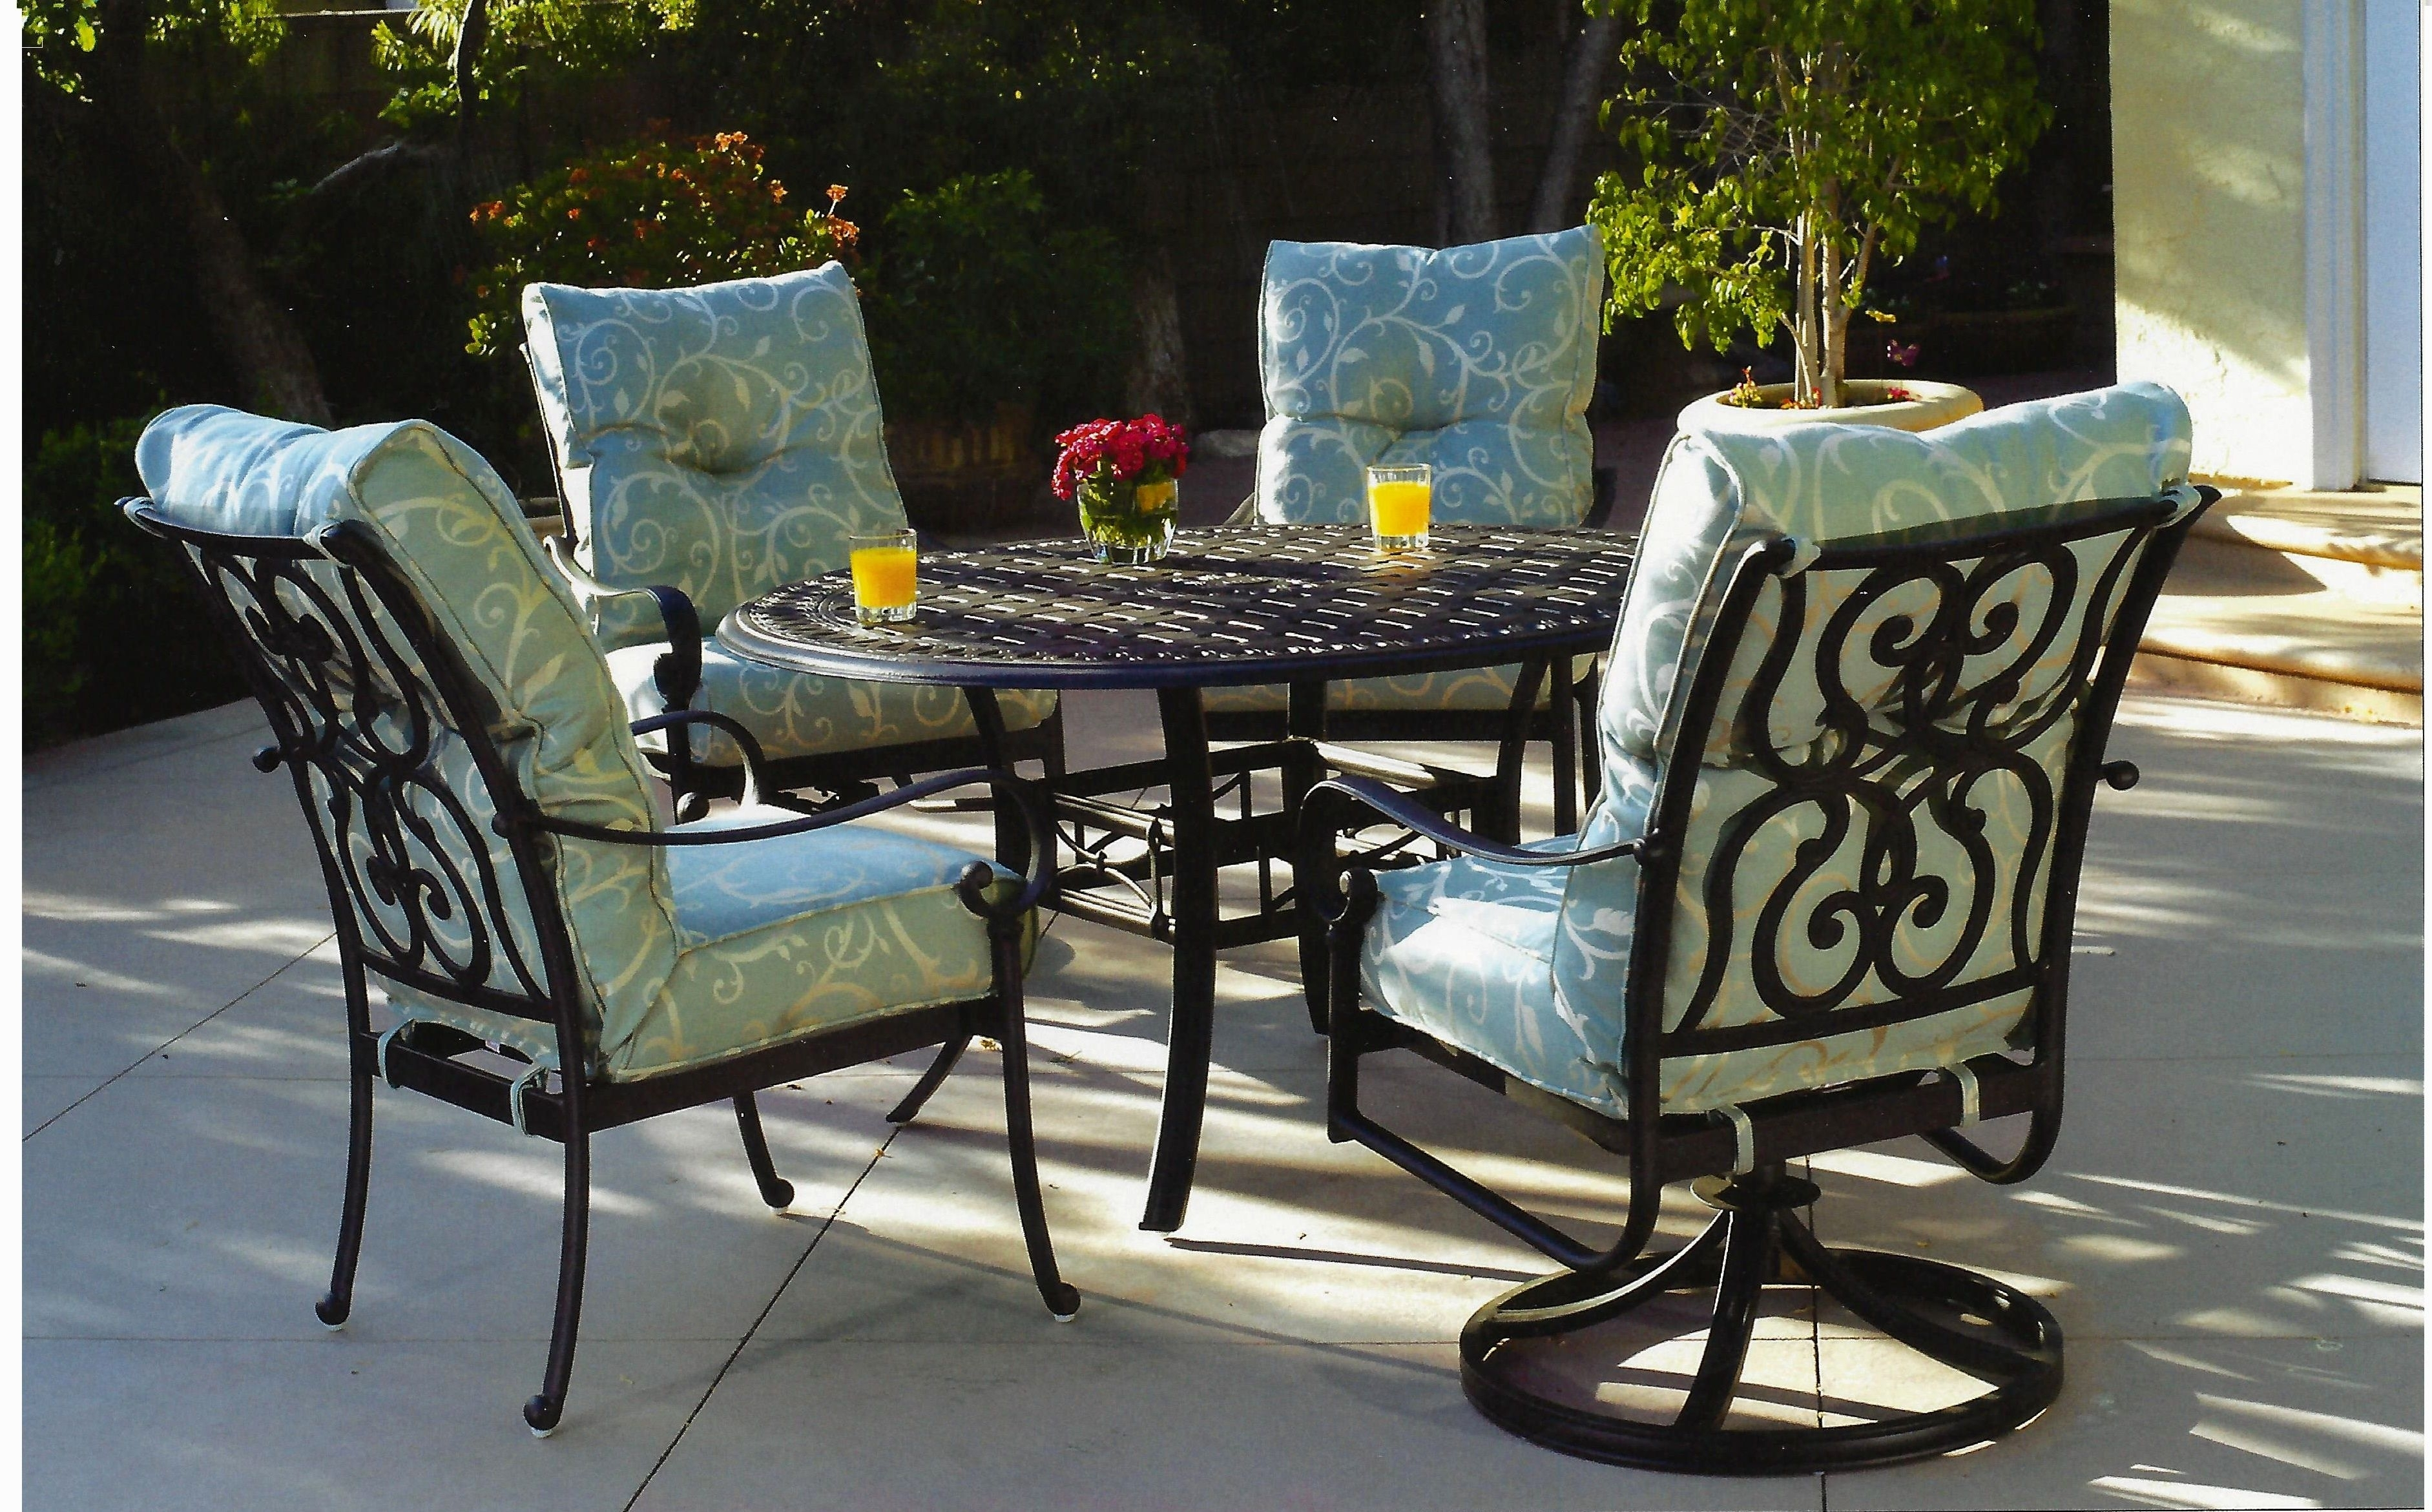 Used Yard Furniture Outdoor Furniture For Sale Owner Pre Owned